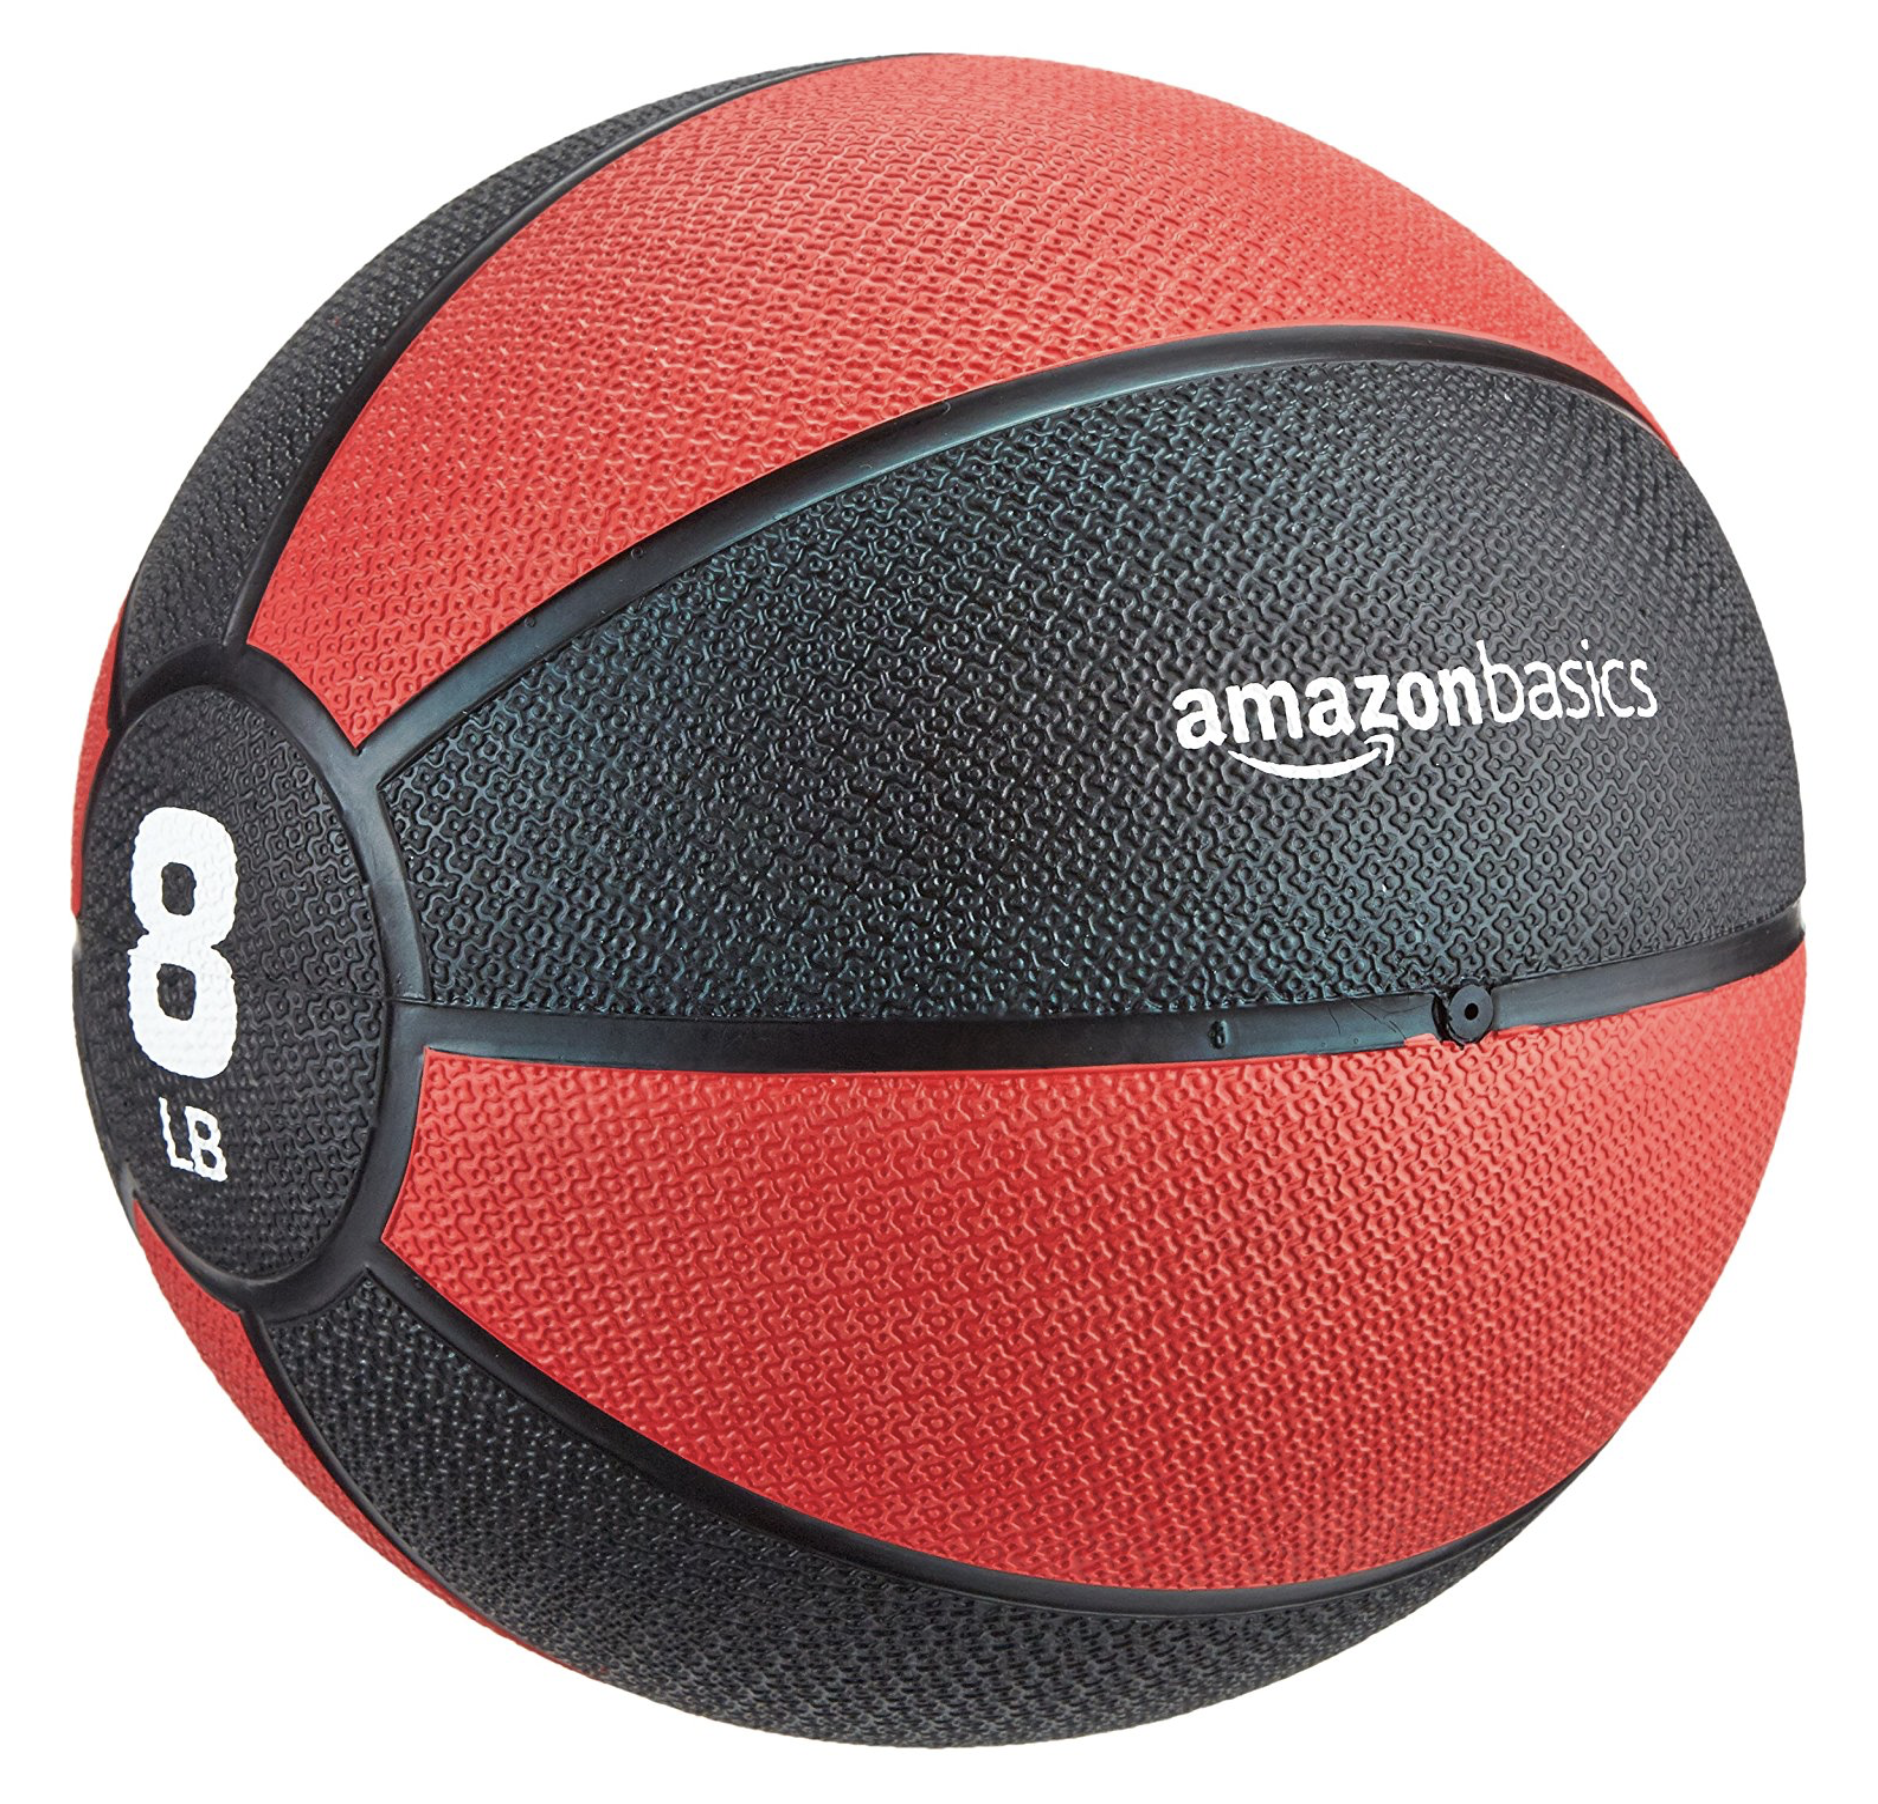 Medicine Balls - Amazon basics make reasonably priced medicine balls that are durable and maintain grip.